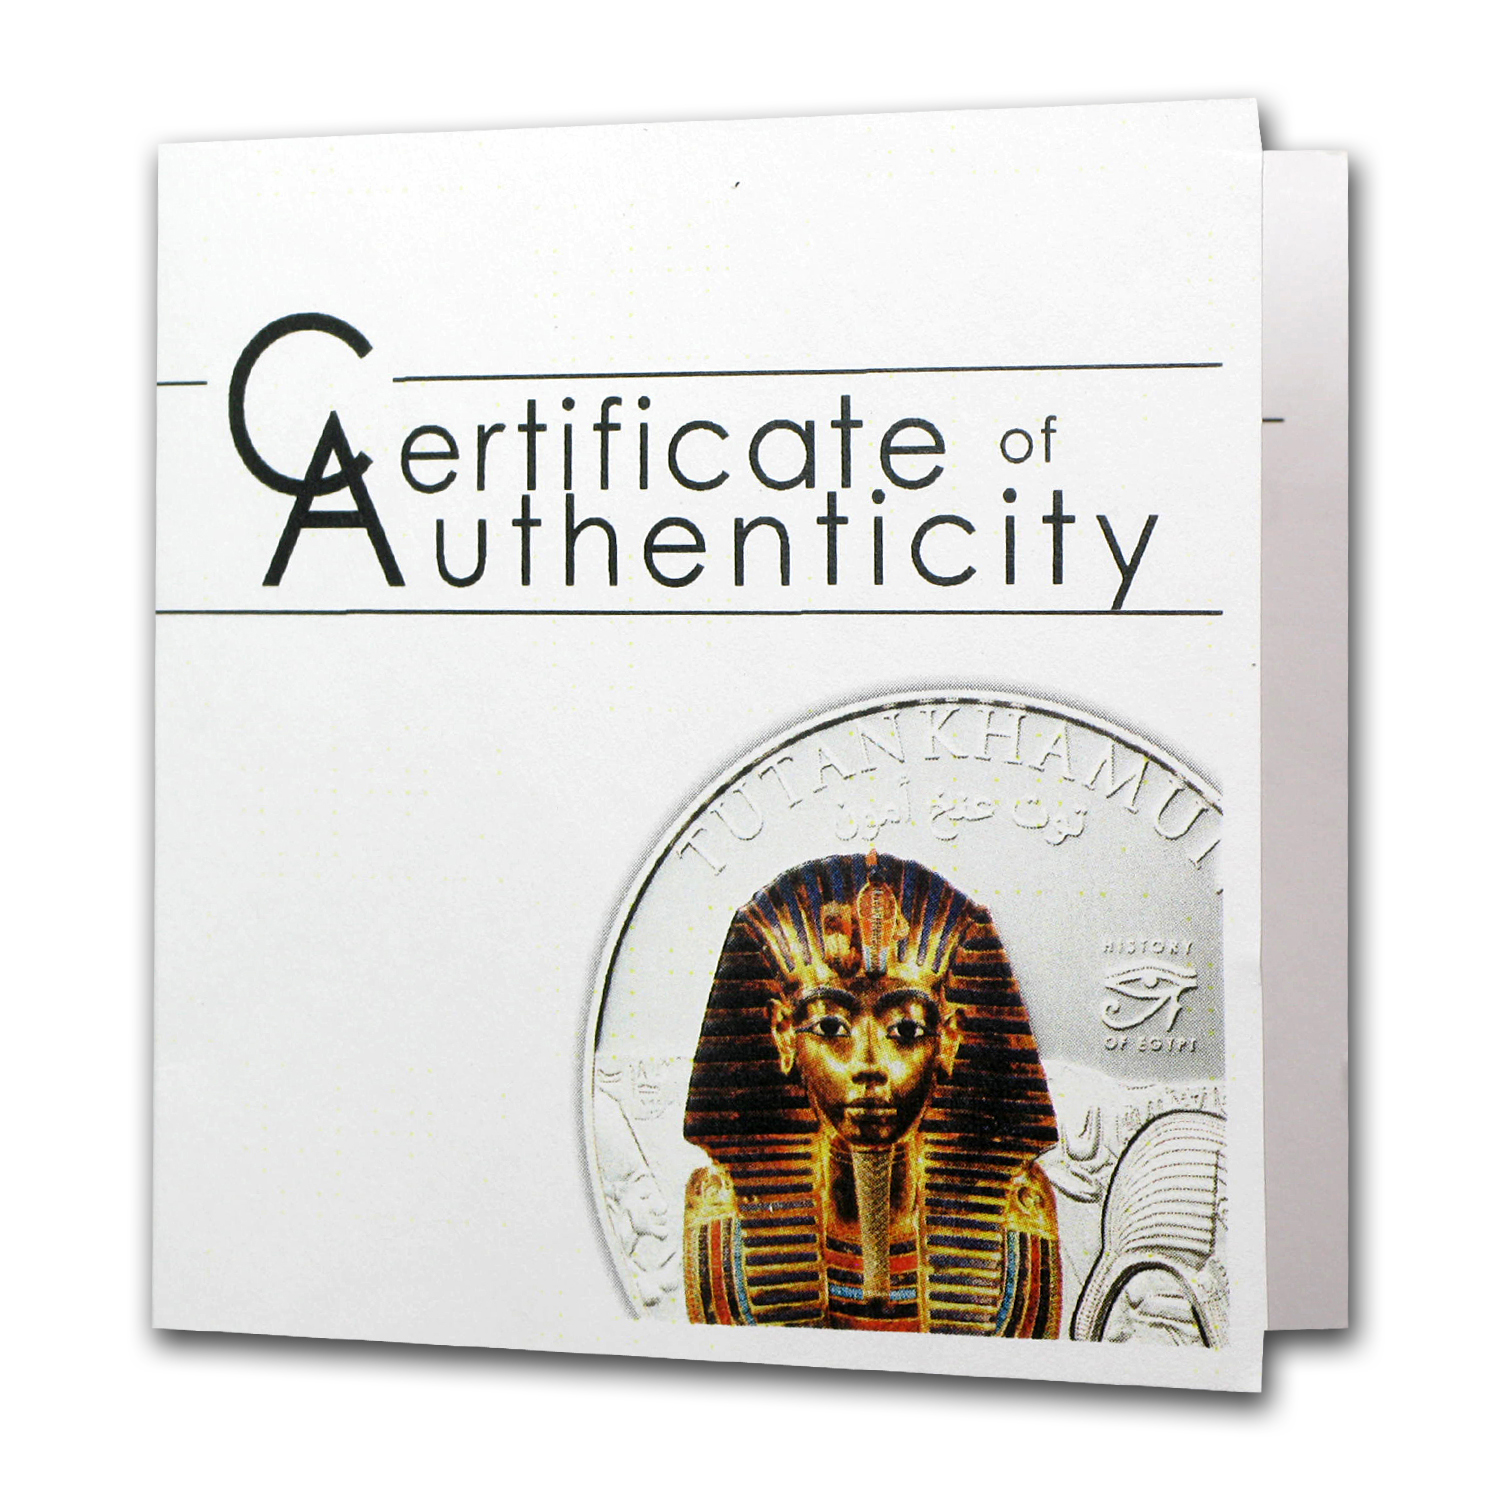 Cook Islands 2012 Proof Silver $5 History of Egypt - Tutankhamun